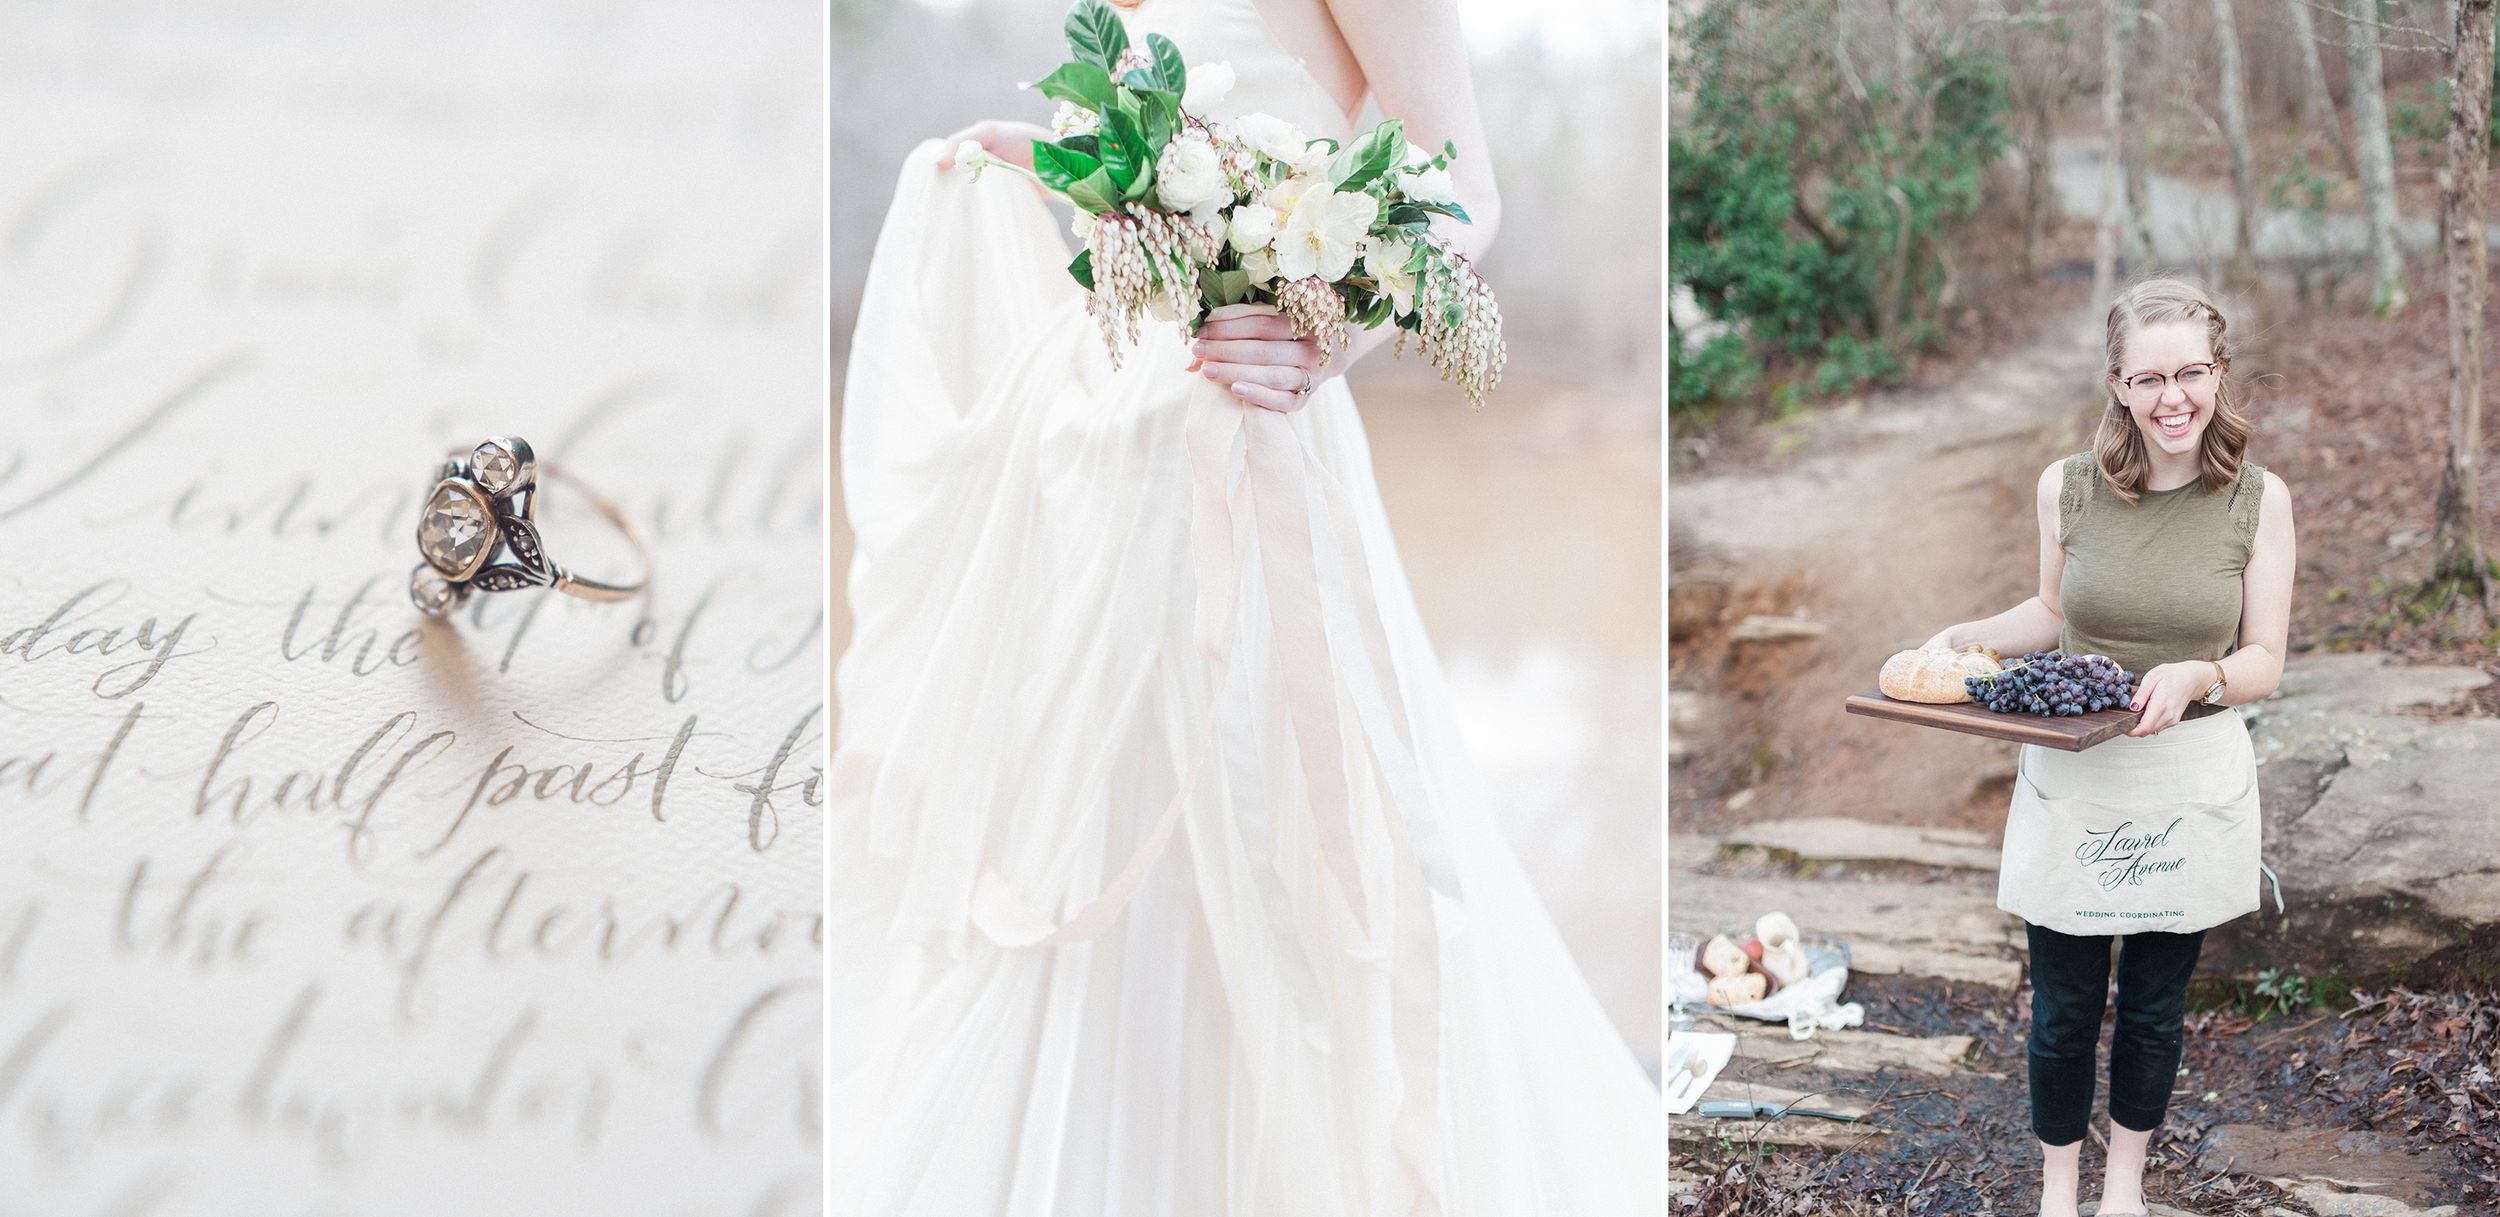 Wedding planning, coaching, coordinating managing wedding timelines for perfect wedding days with Laurel Avenue weddings.